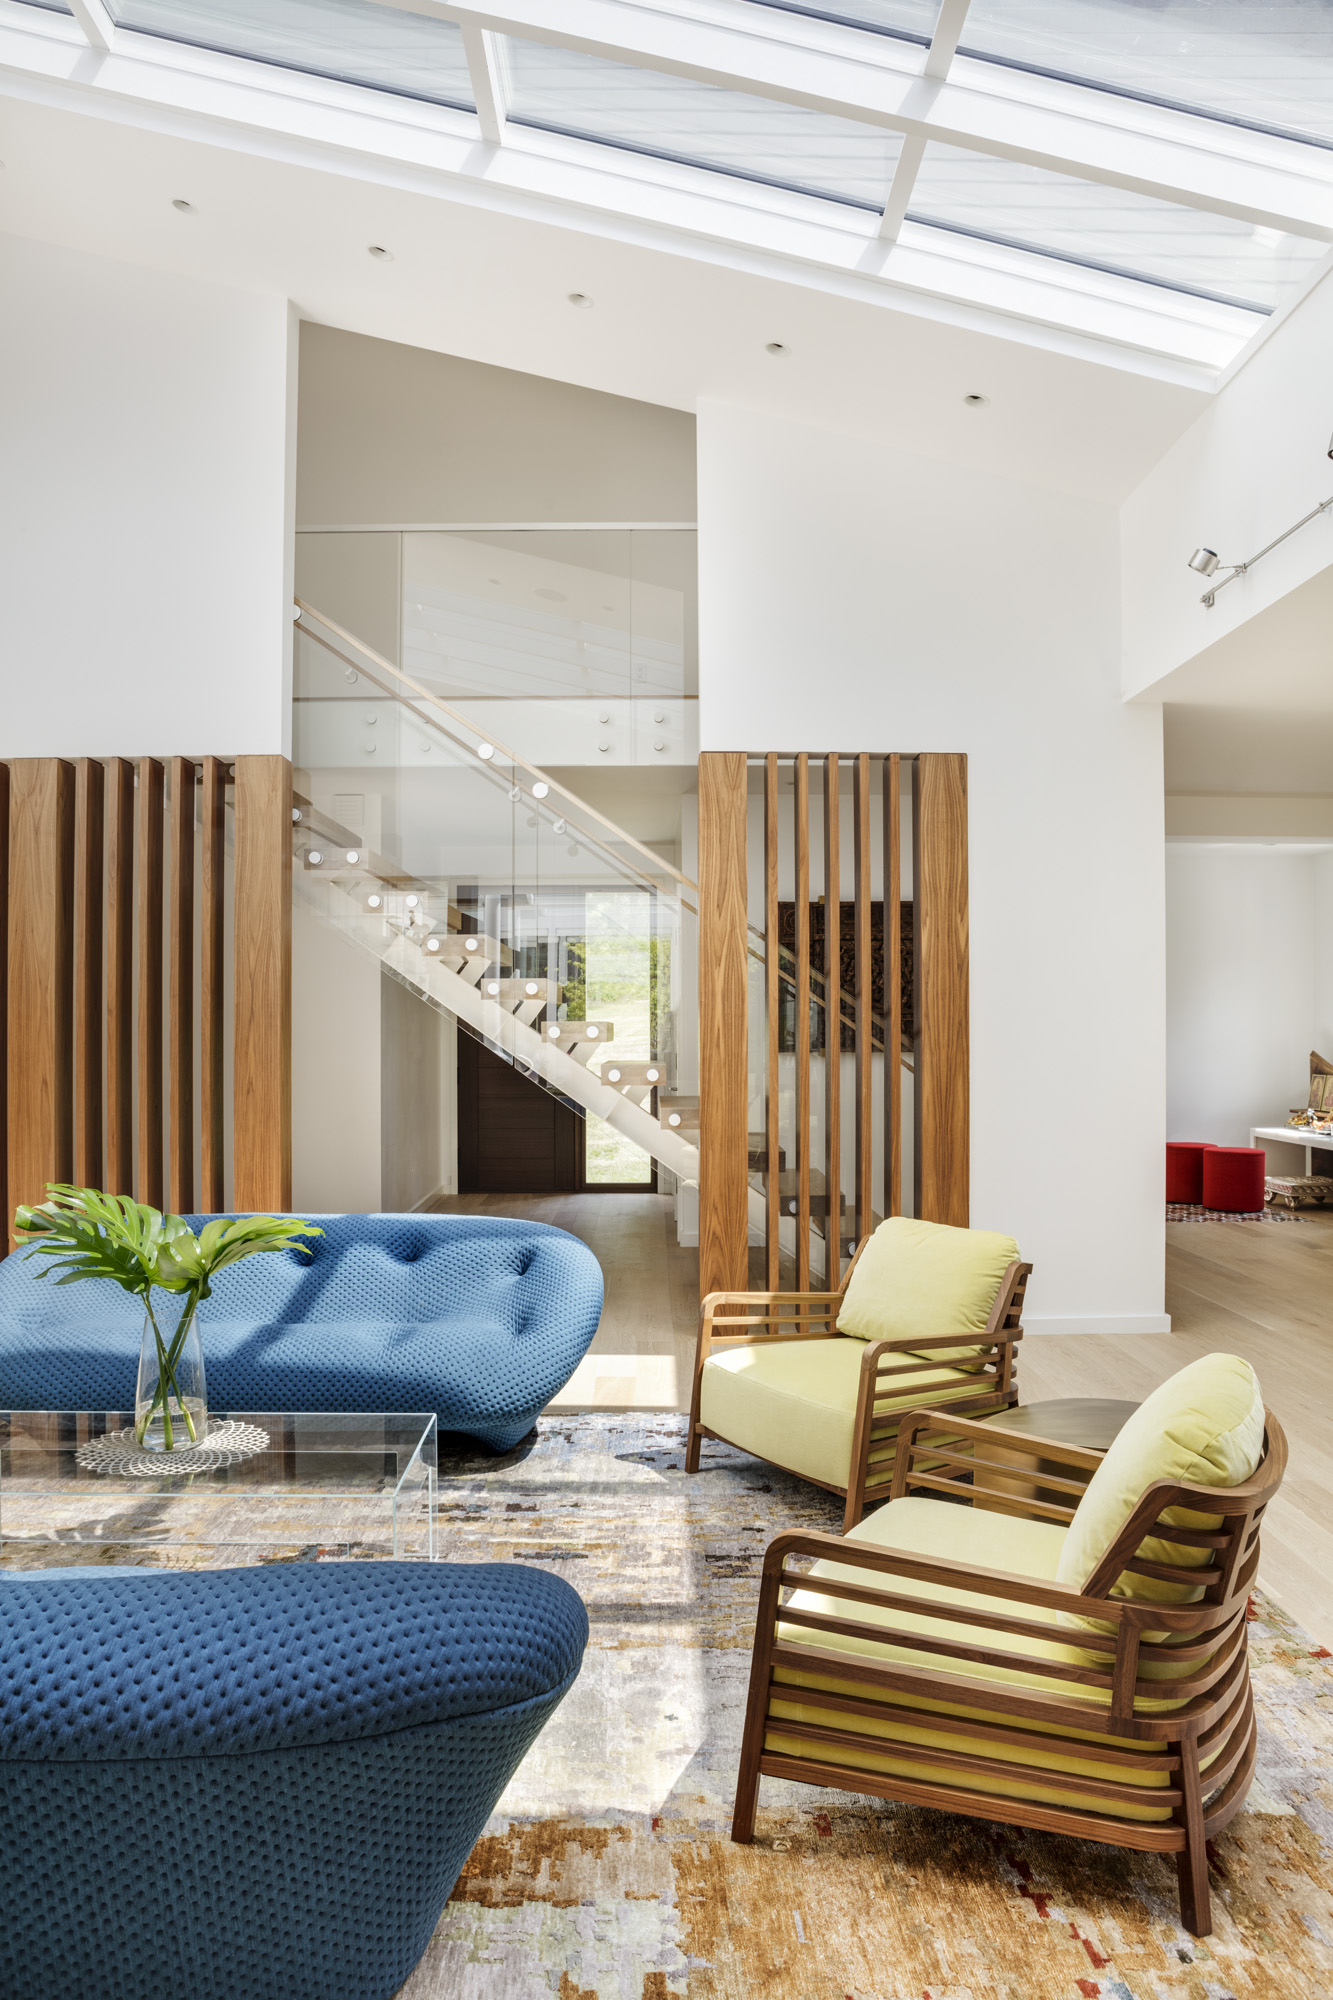 The architecture of the living room features a largeskylight andbuilt-in wood screen. Blue Ligne Roset sofas are starkly contemporary, while the frames of the Ligne Rosetarmchair match the screen. The brass table between the chairs is from Jonathan Adler.